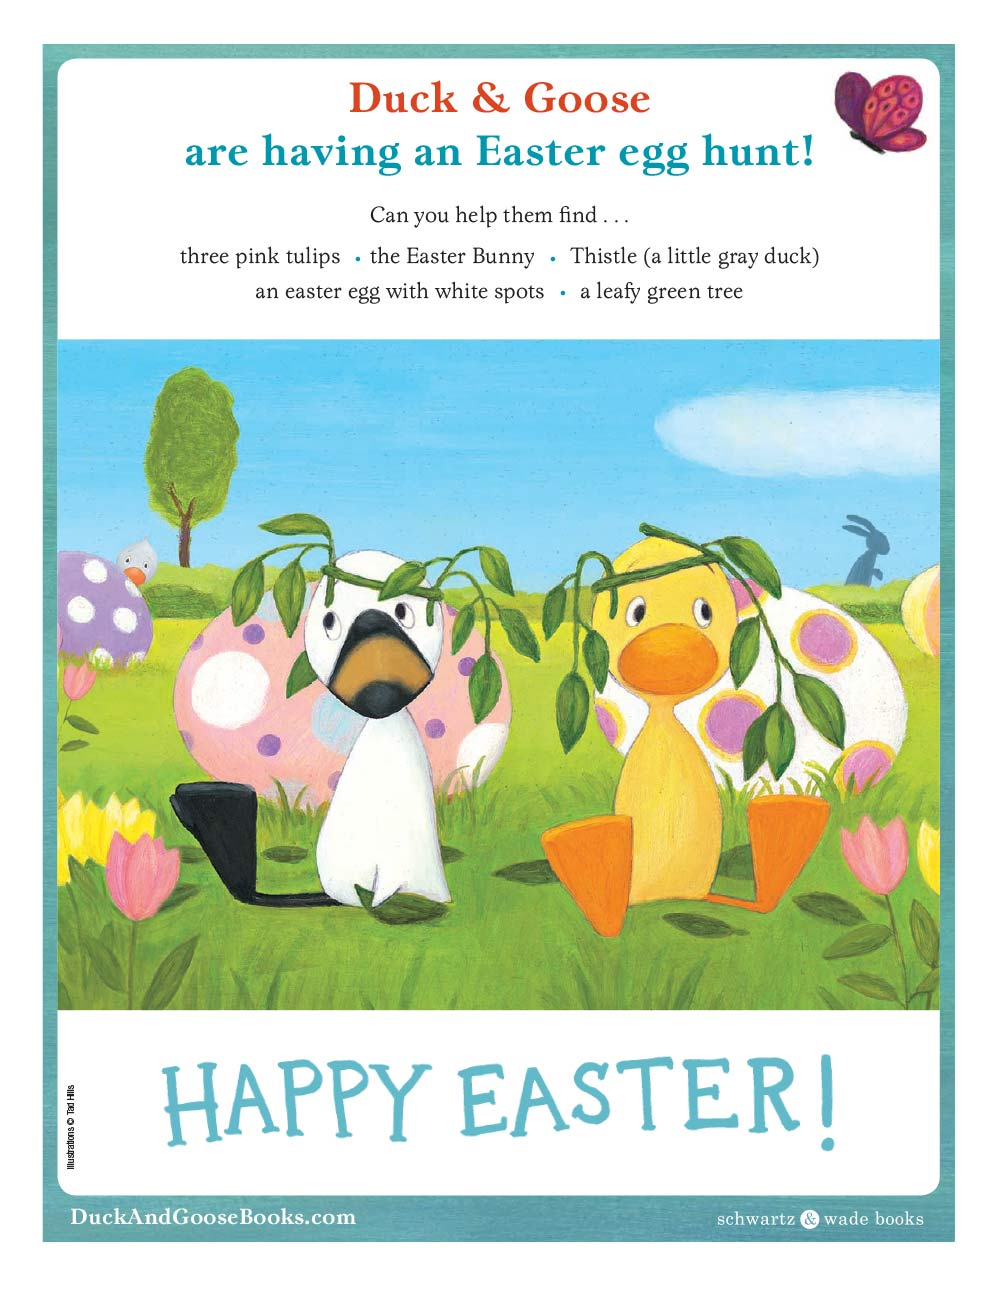 Hunt for Eggs with Duck and Goose!